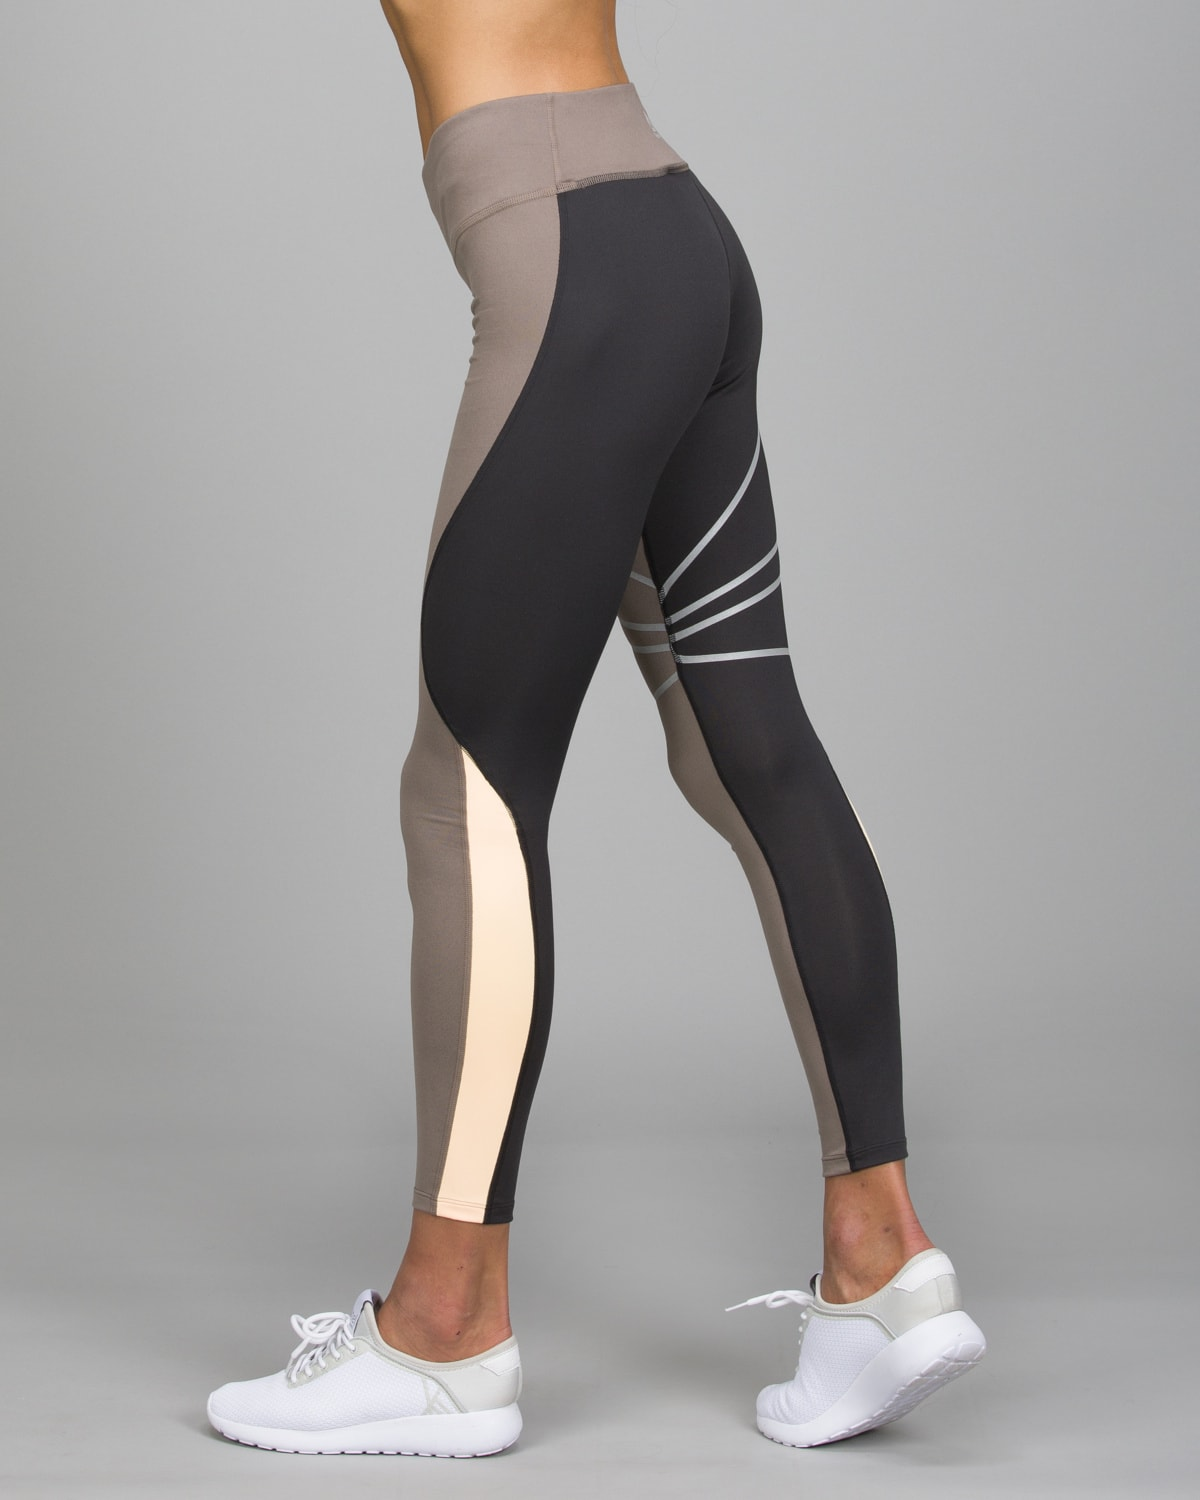 Reebok Running SpeedWick Tights.Smoky Taupe